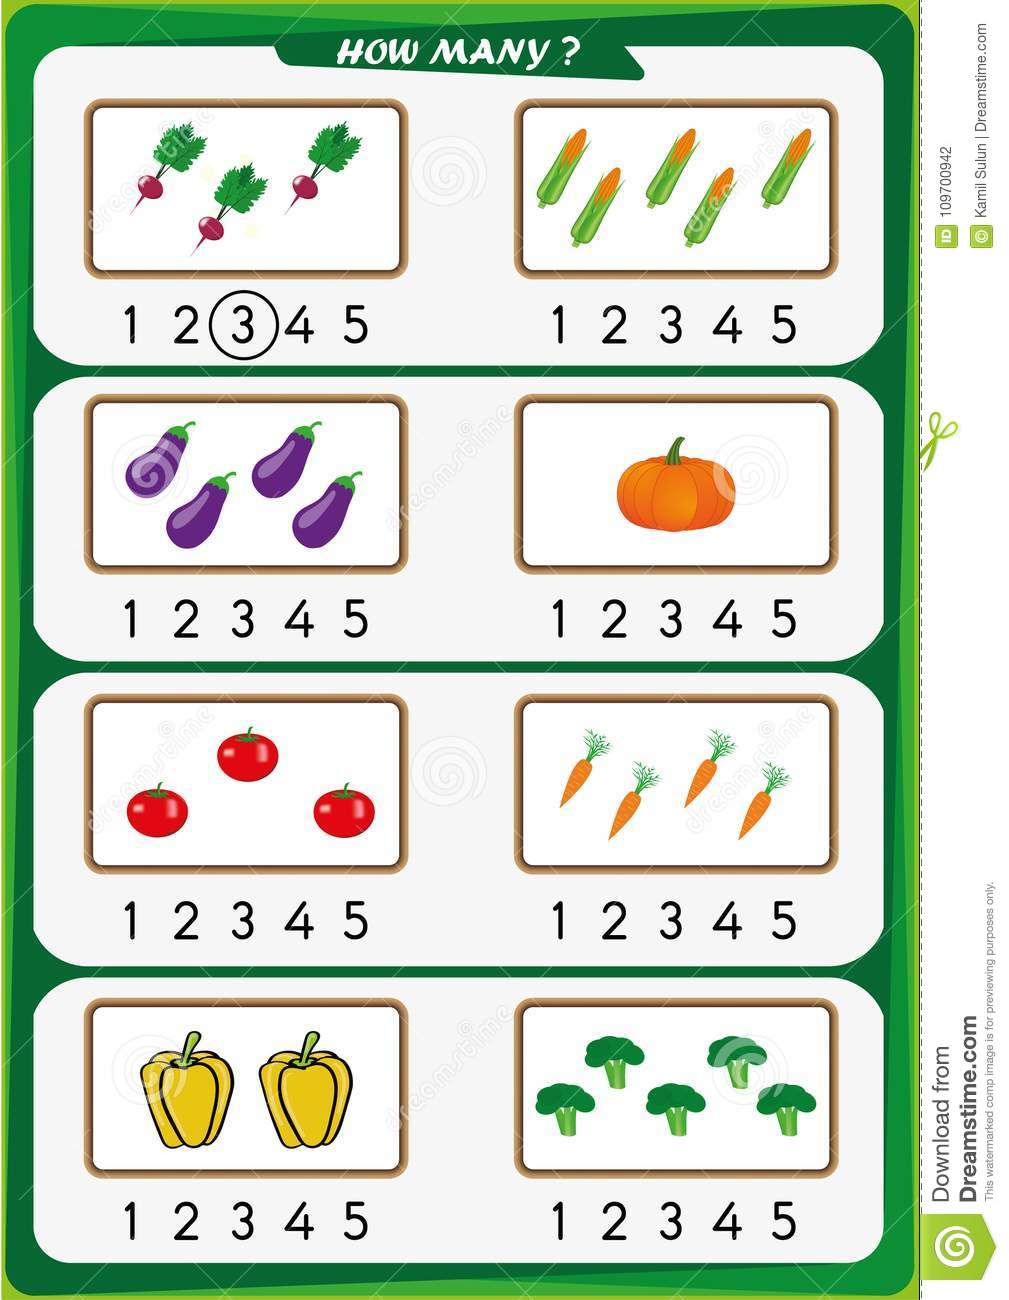 Worksheet For Kindergarten Kids, Count The Number Of ...